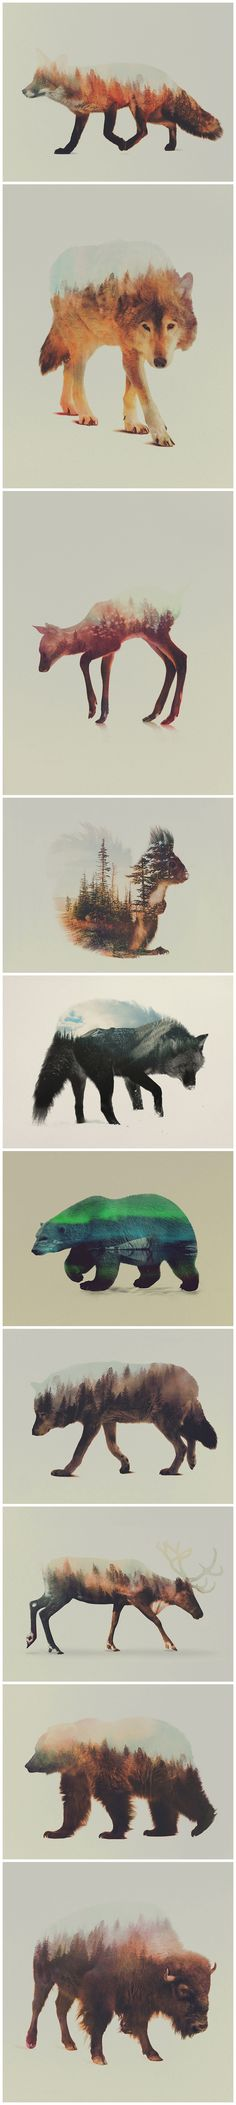 Double Exposure Animals by Andreas Lie - http://society6.com/andreaslie | https://www.facebook.com/Artbylie | http://artbylie.tumblr.com/